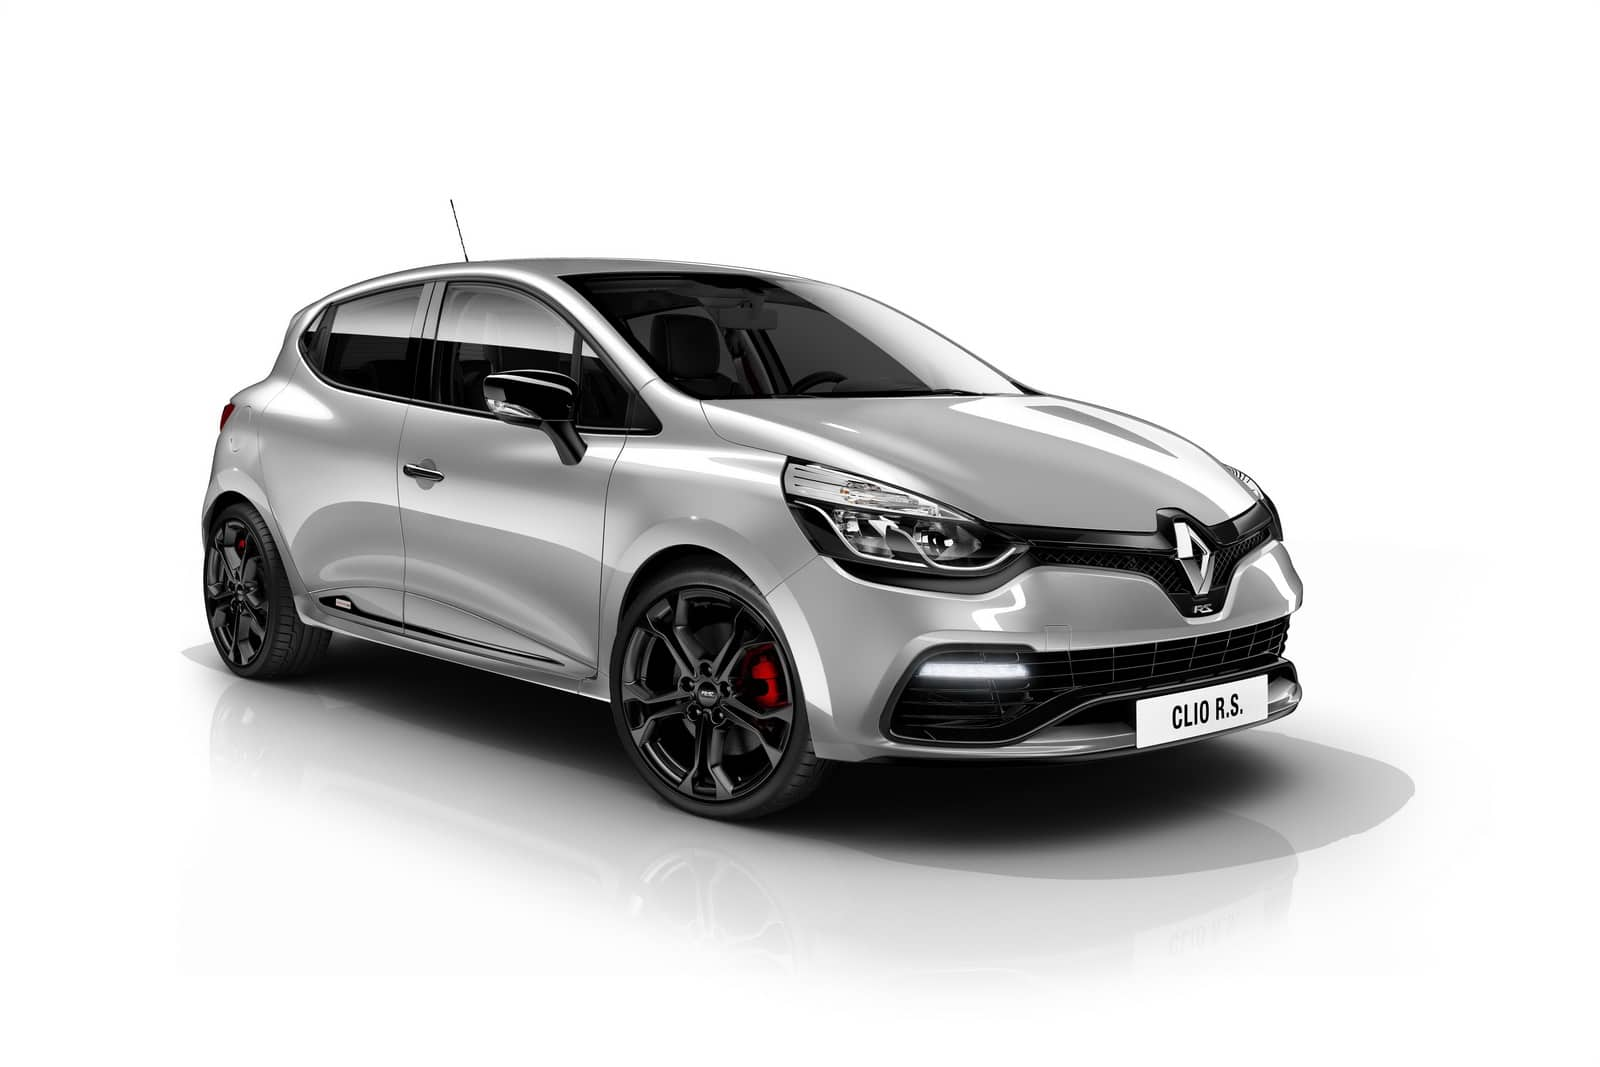 la renault clio r s 200 edc monaco gp 2014 se d couvre. Black Bedroom Furniture Sets. Home Design Ideas